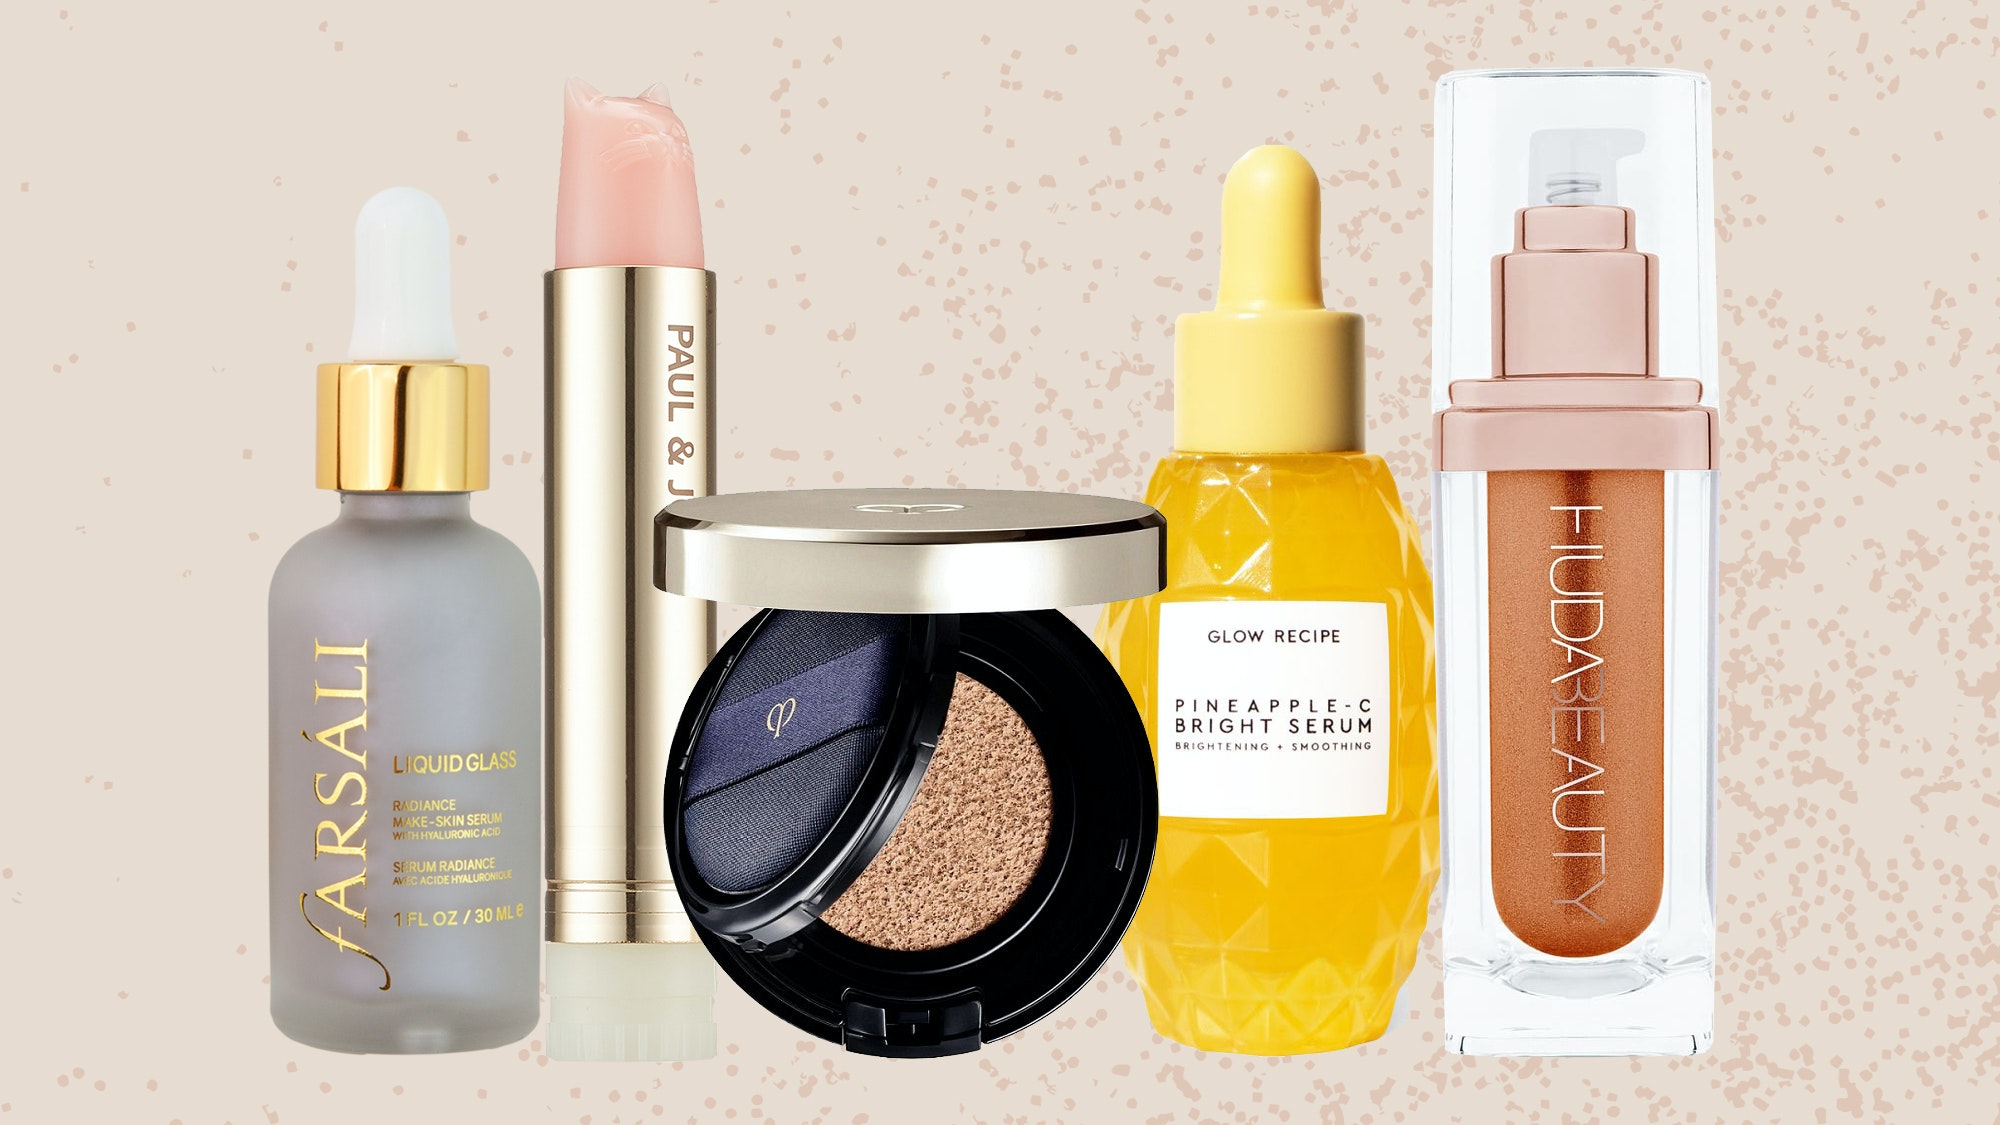 18 New Beauty Launches Our Editors Just Can't Stop Gushing About This June